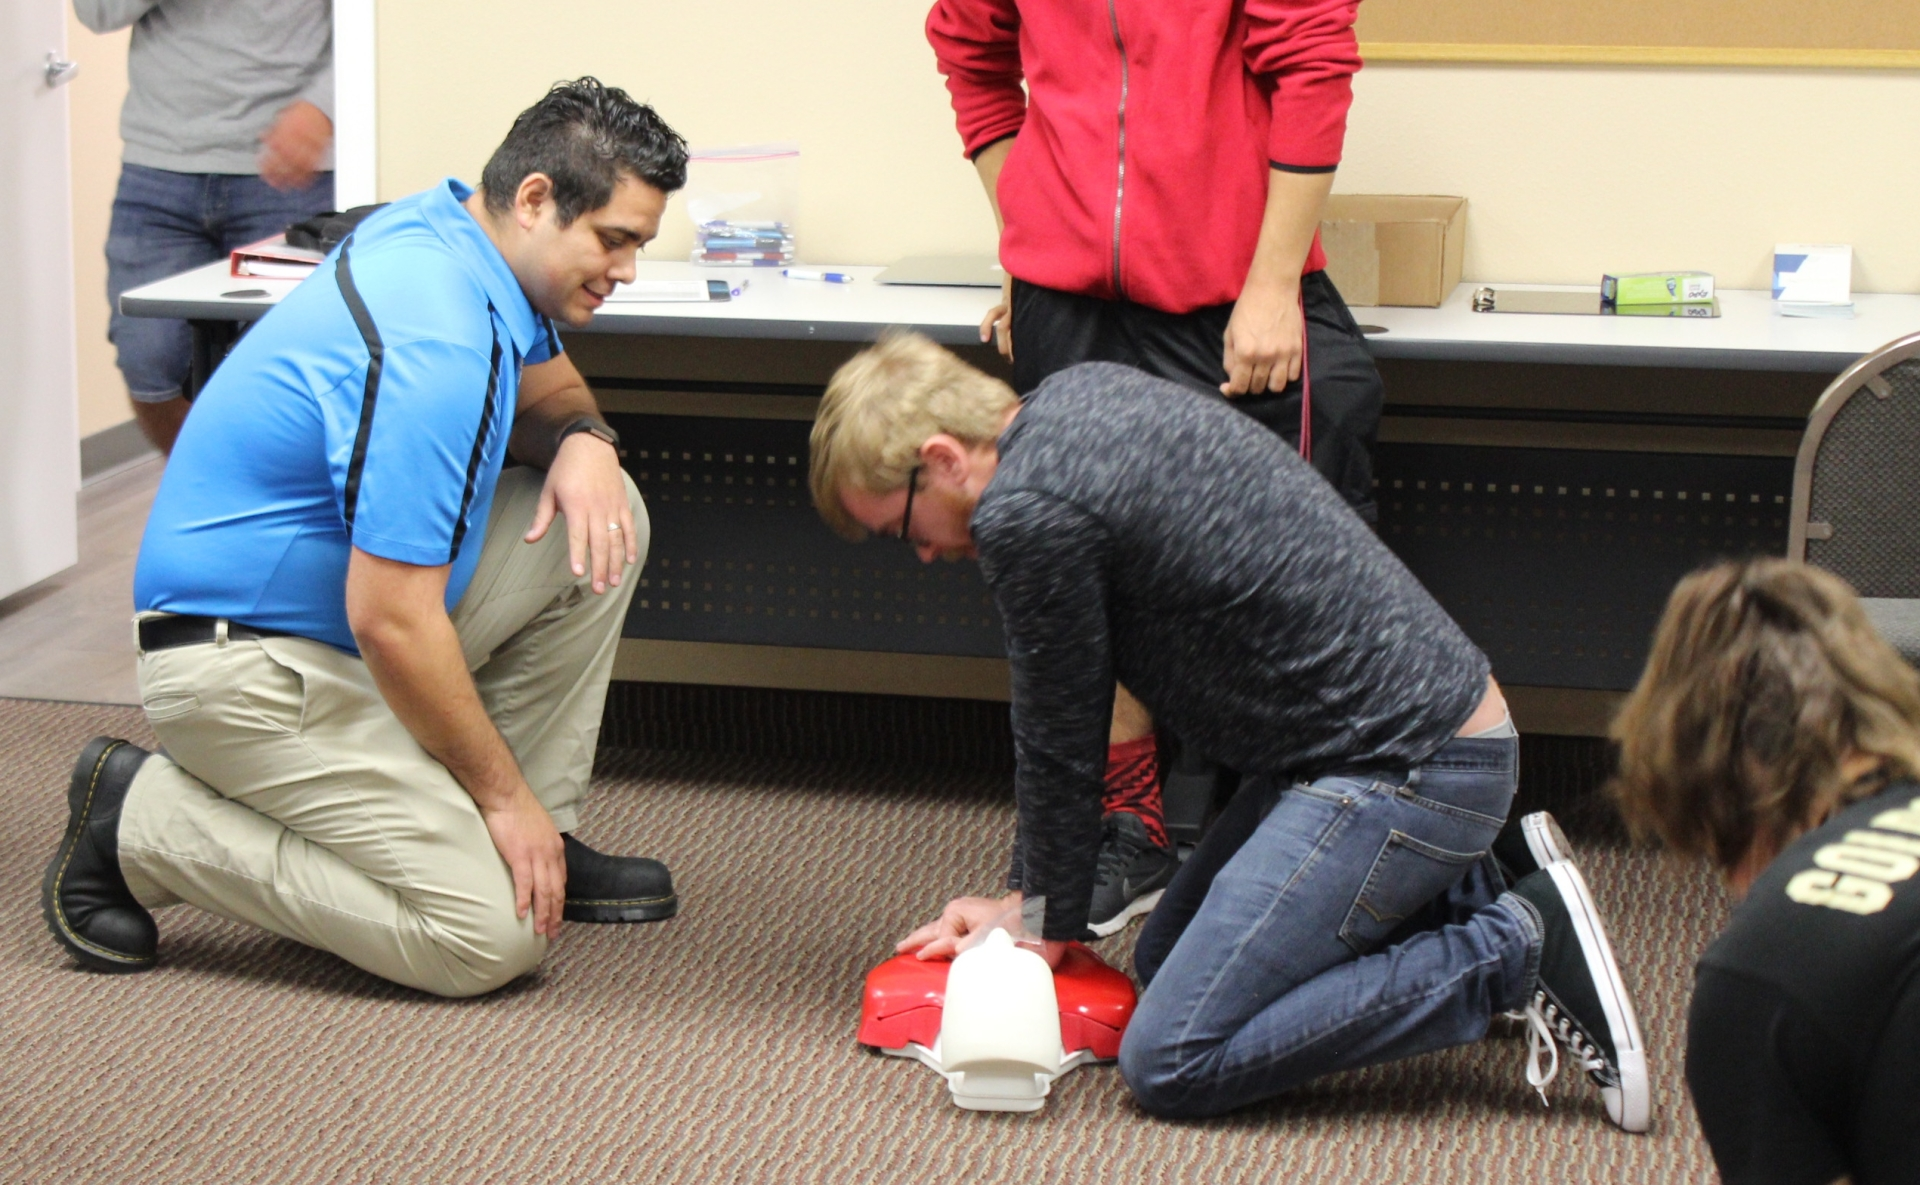 Practicing compressions for Adult CPR